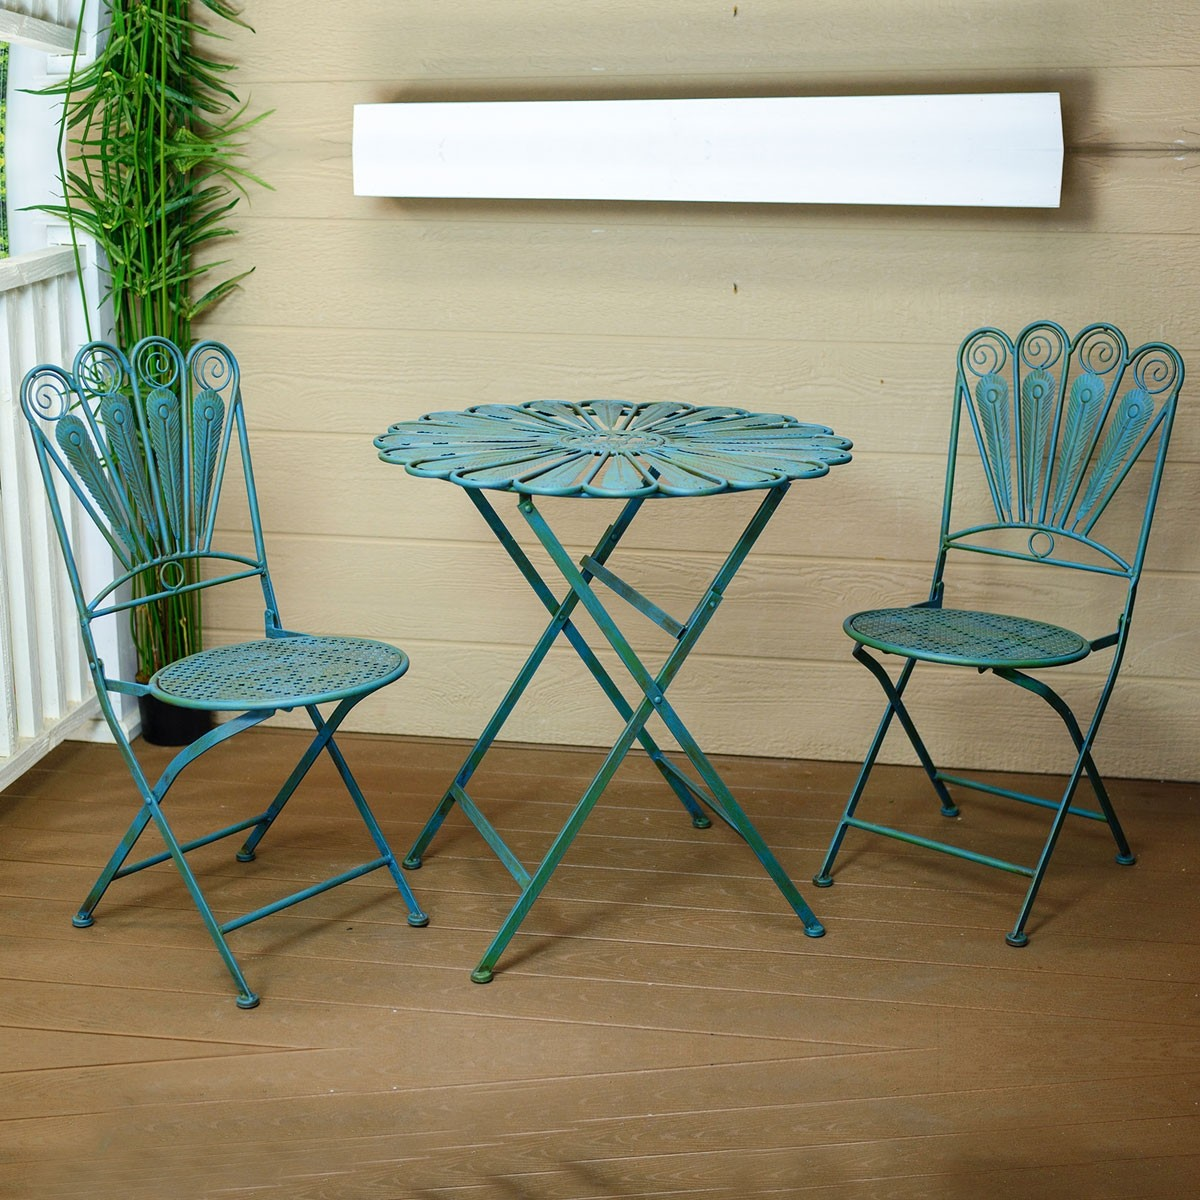 Alpine Metal Peacock Feather Garden Furniture Patio Bistro Set, 1 Table and 2 Chairs, 30 Inch Tall